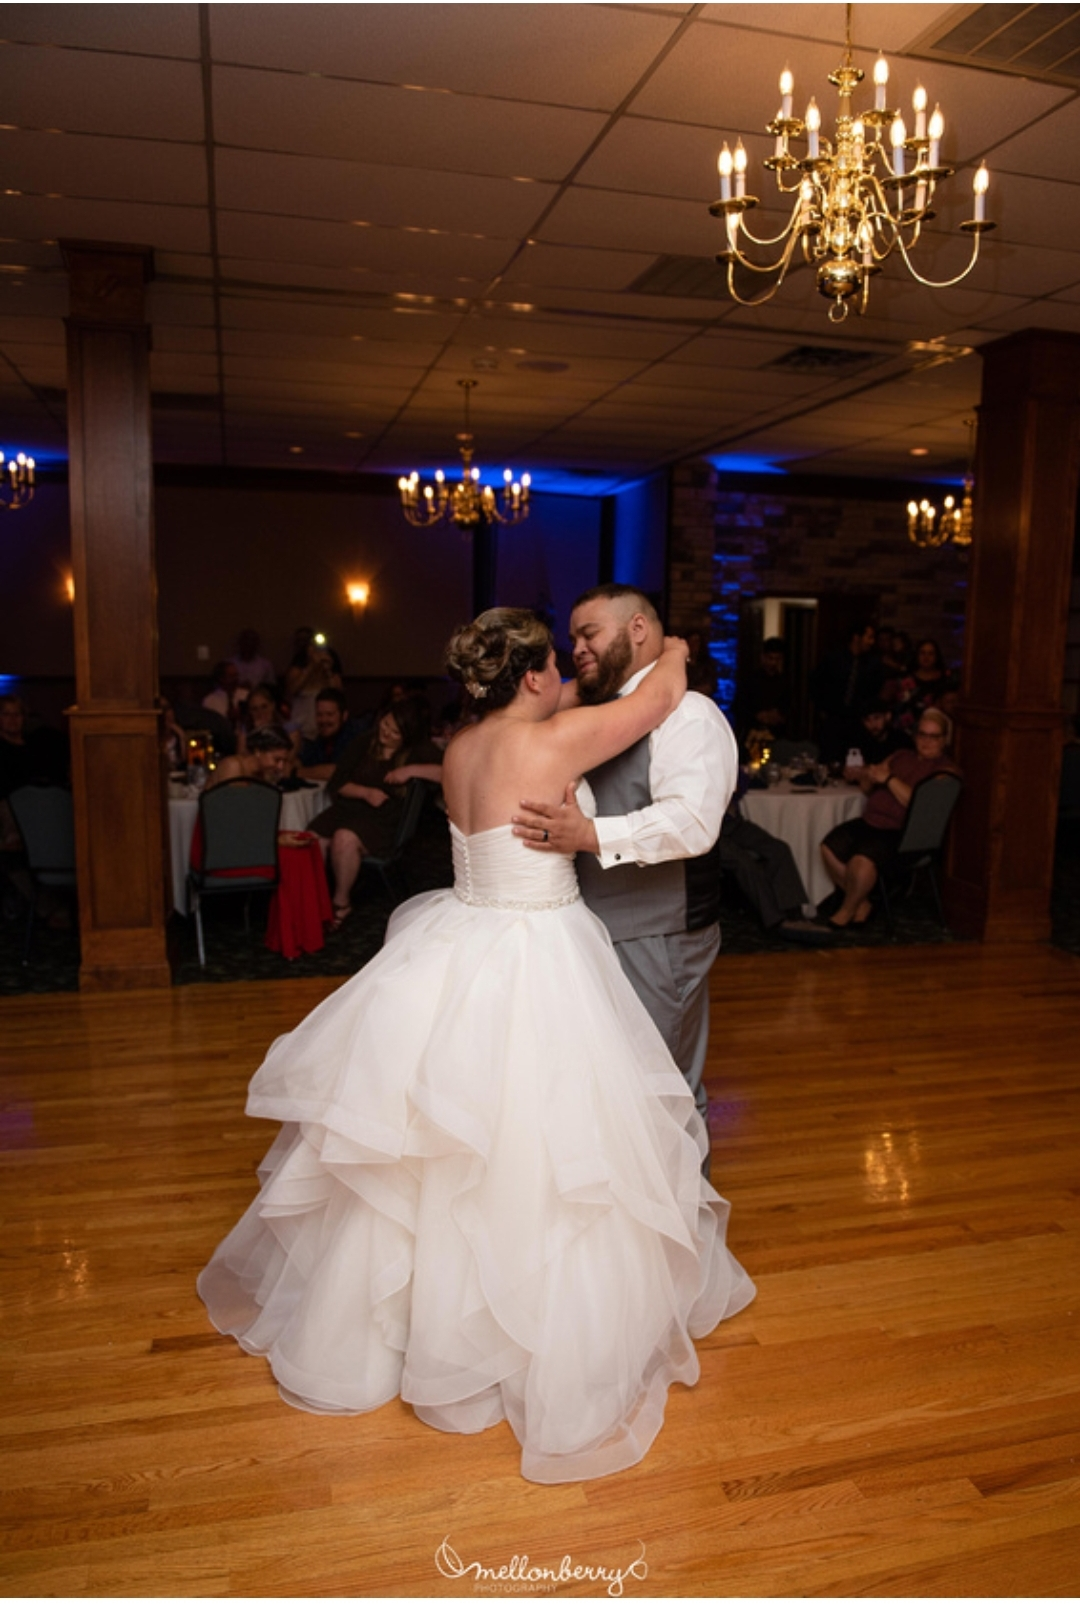 Bride & Groom First dance at Barnhouse Village in Bath, Pa